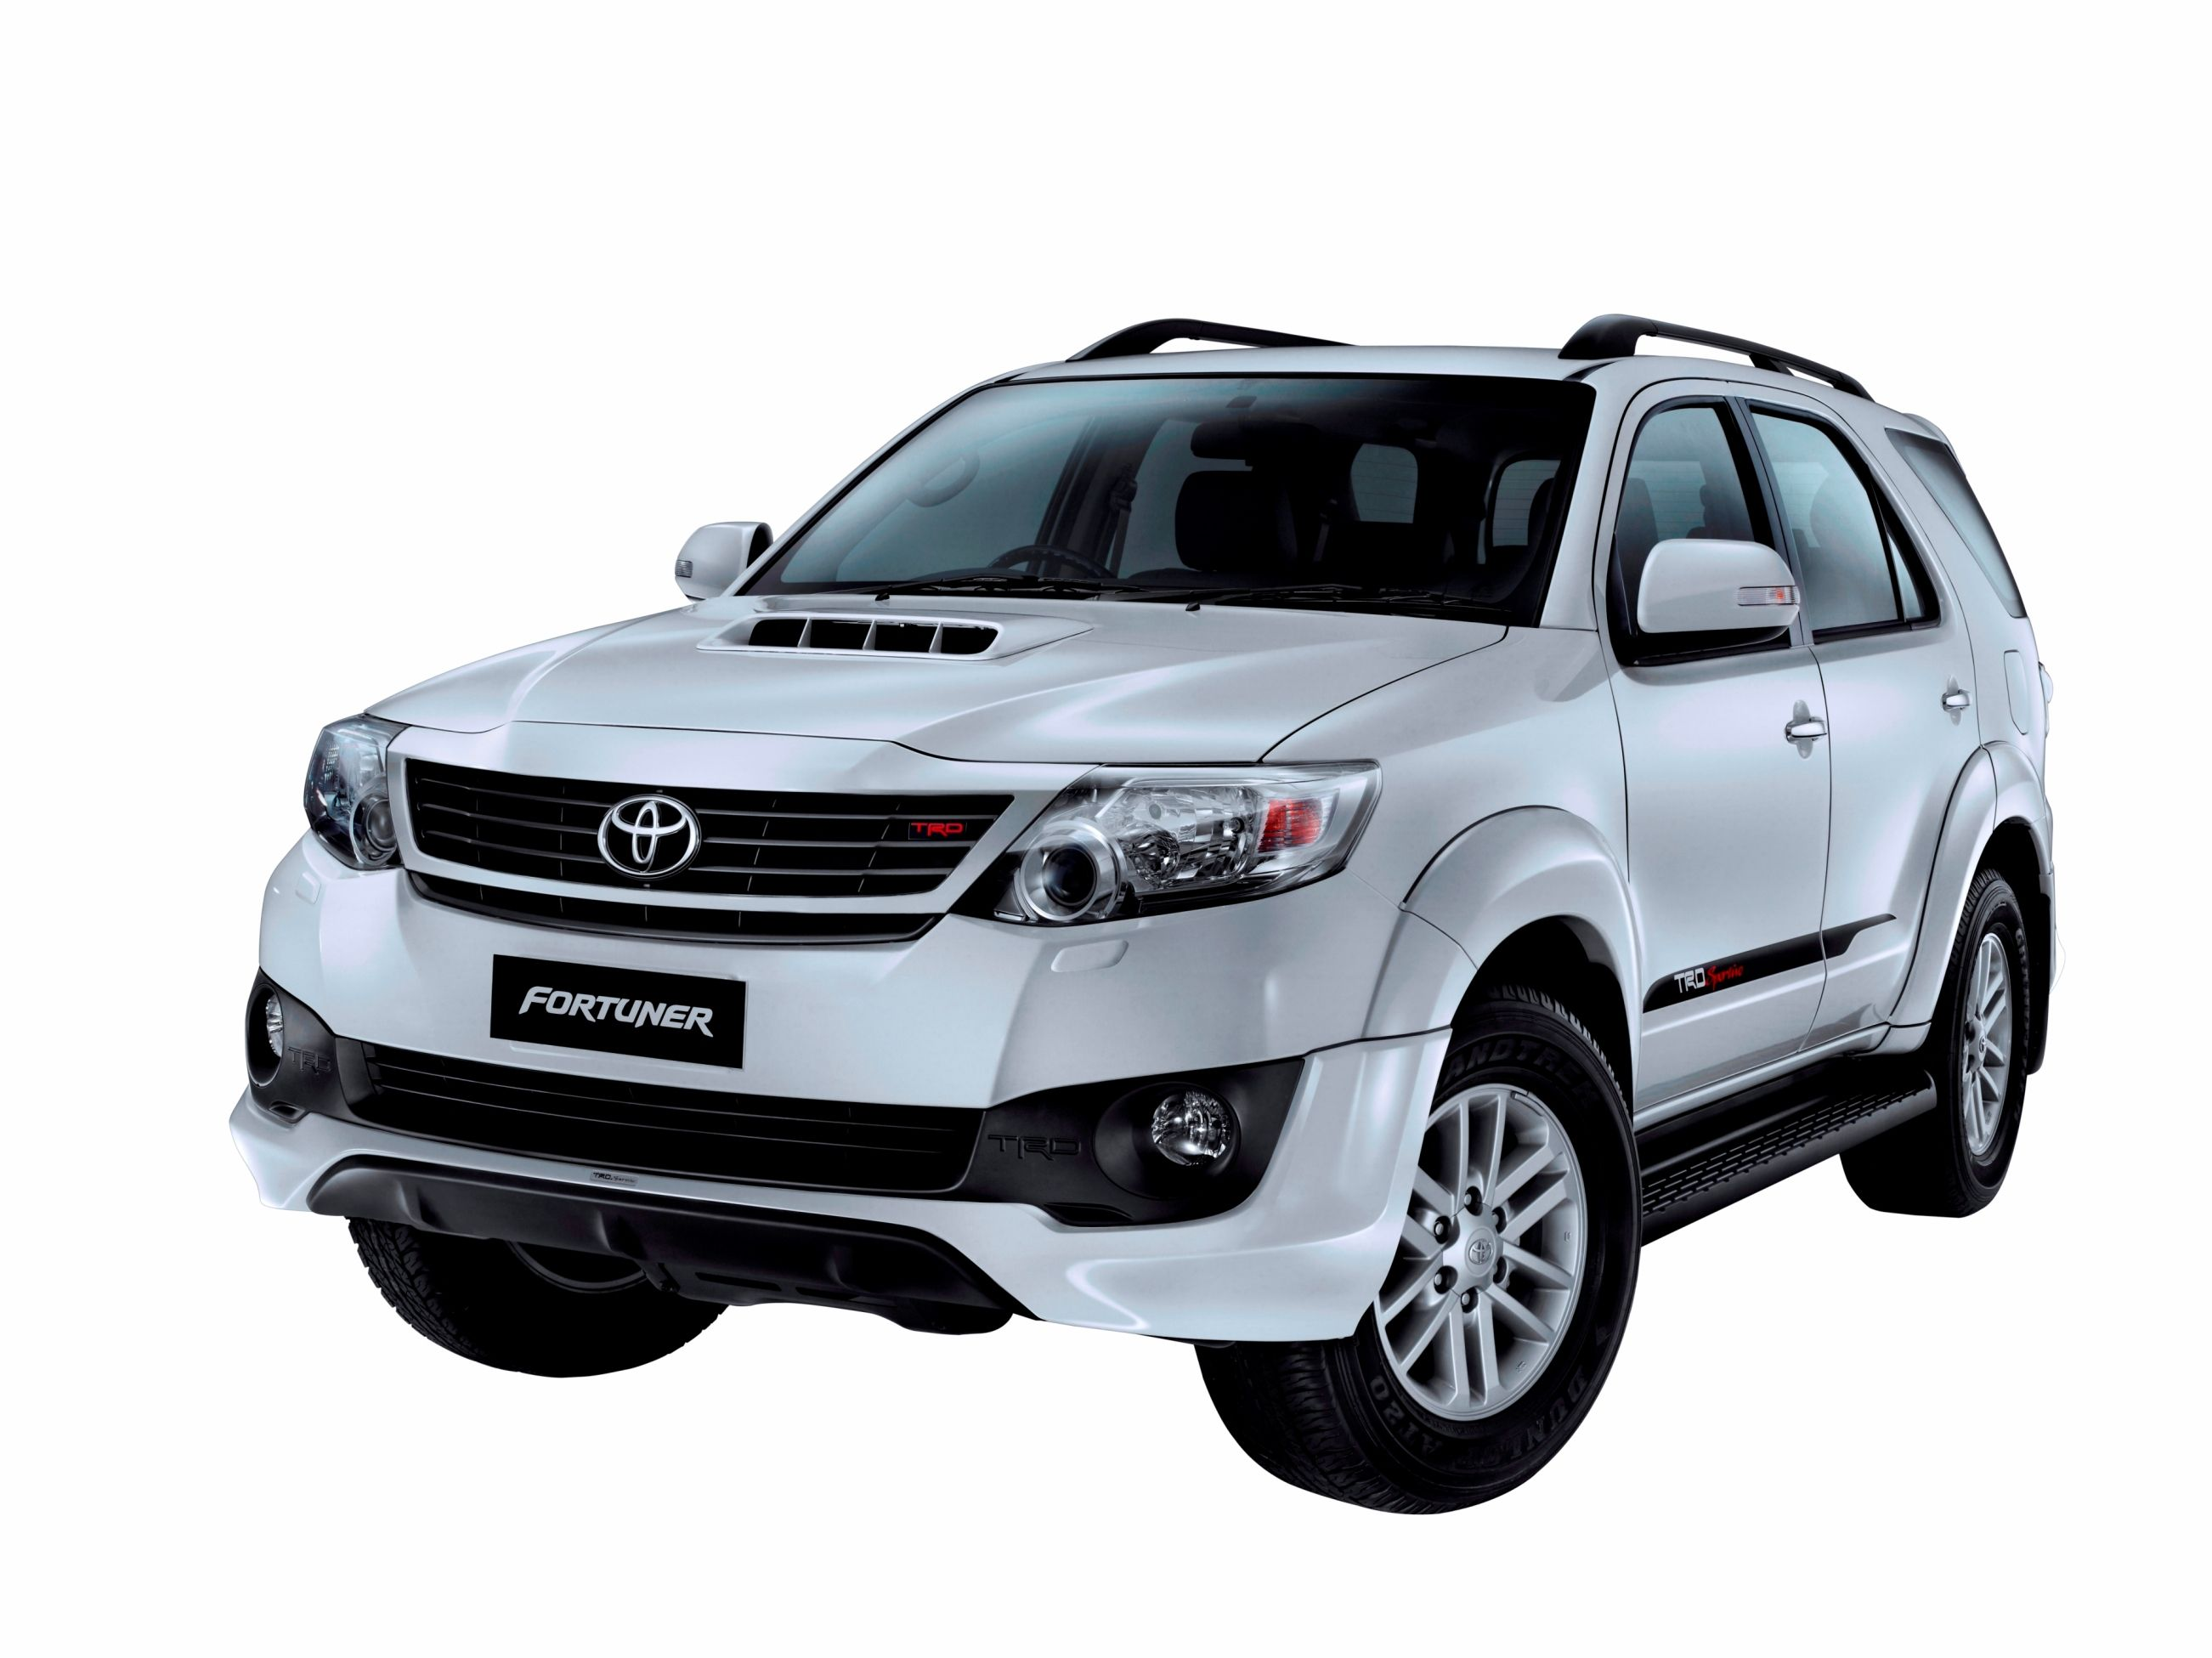 toyota has re-launched the #fortuner #trd #sportivo in india. only